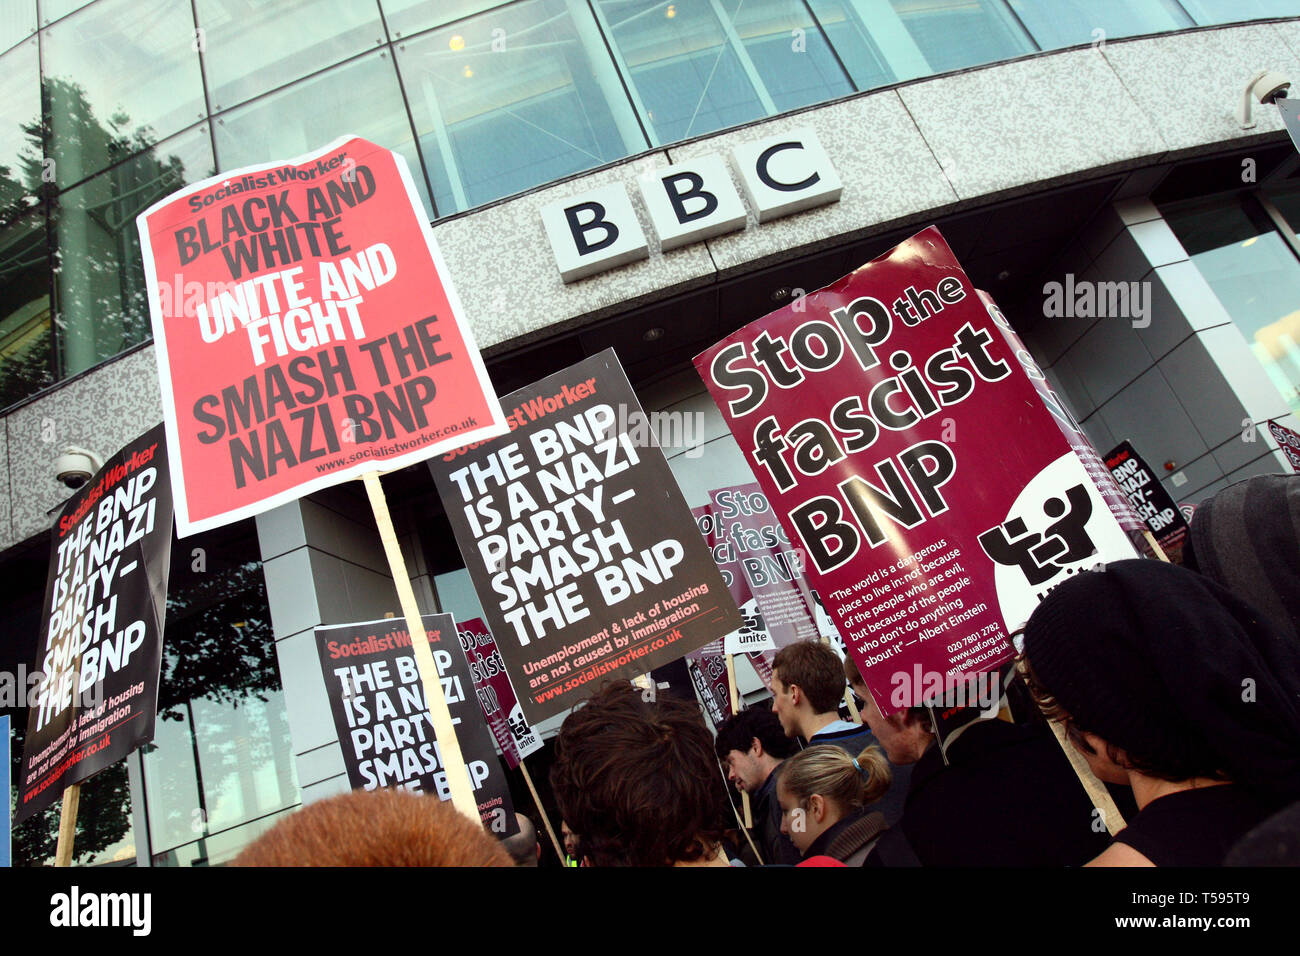 UAF demo opposing the invitation of BNP leader Nick Griffin on Question Time. BBC Television Centre, London.22/10/2009 - Stock Image